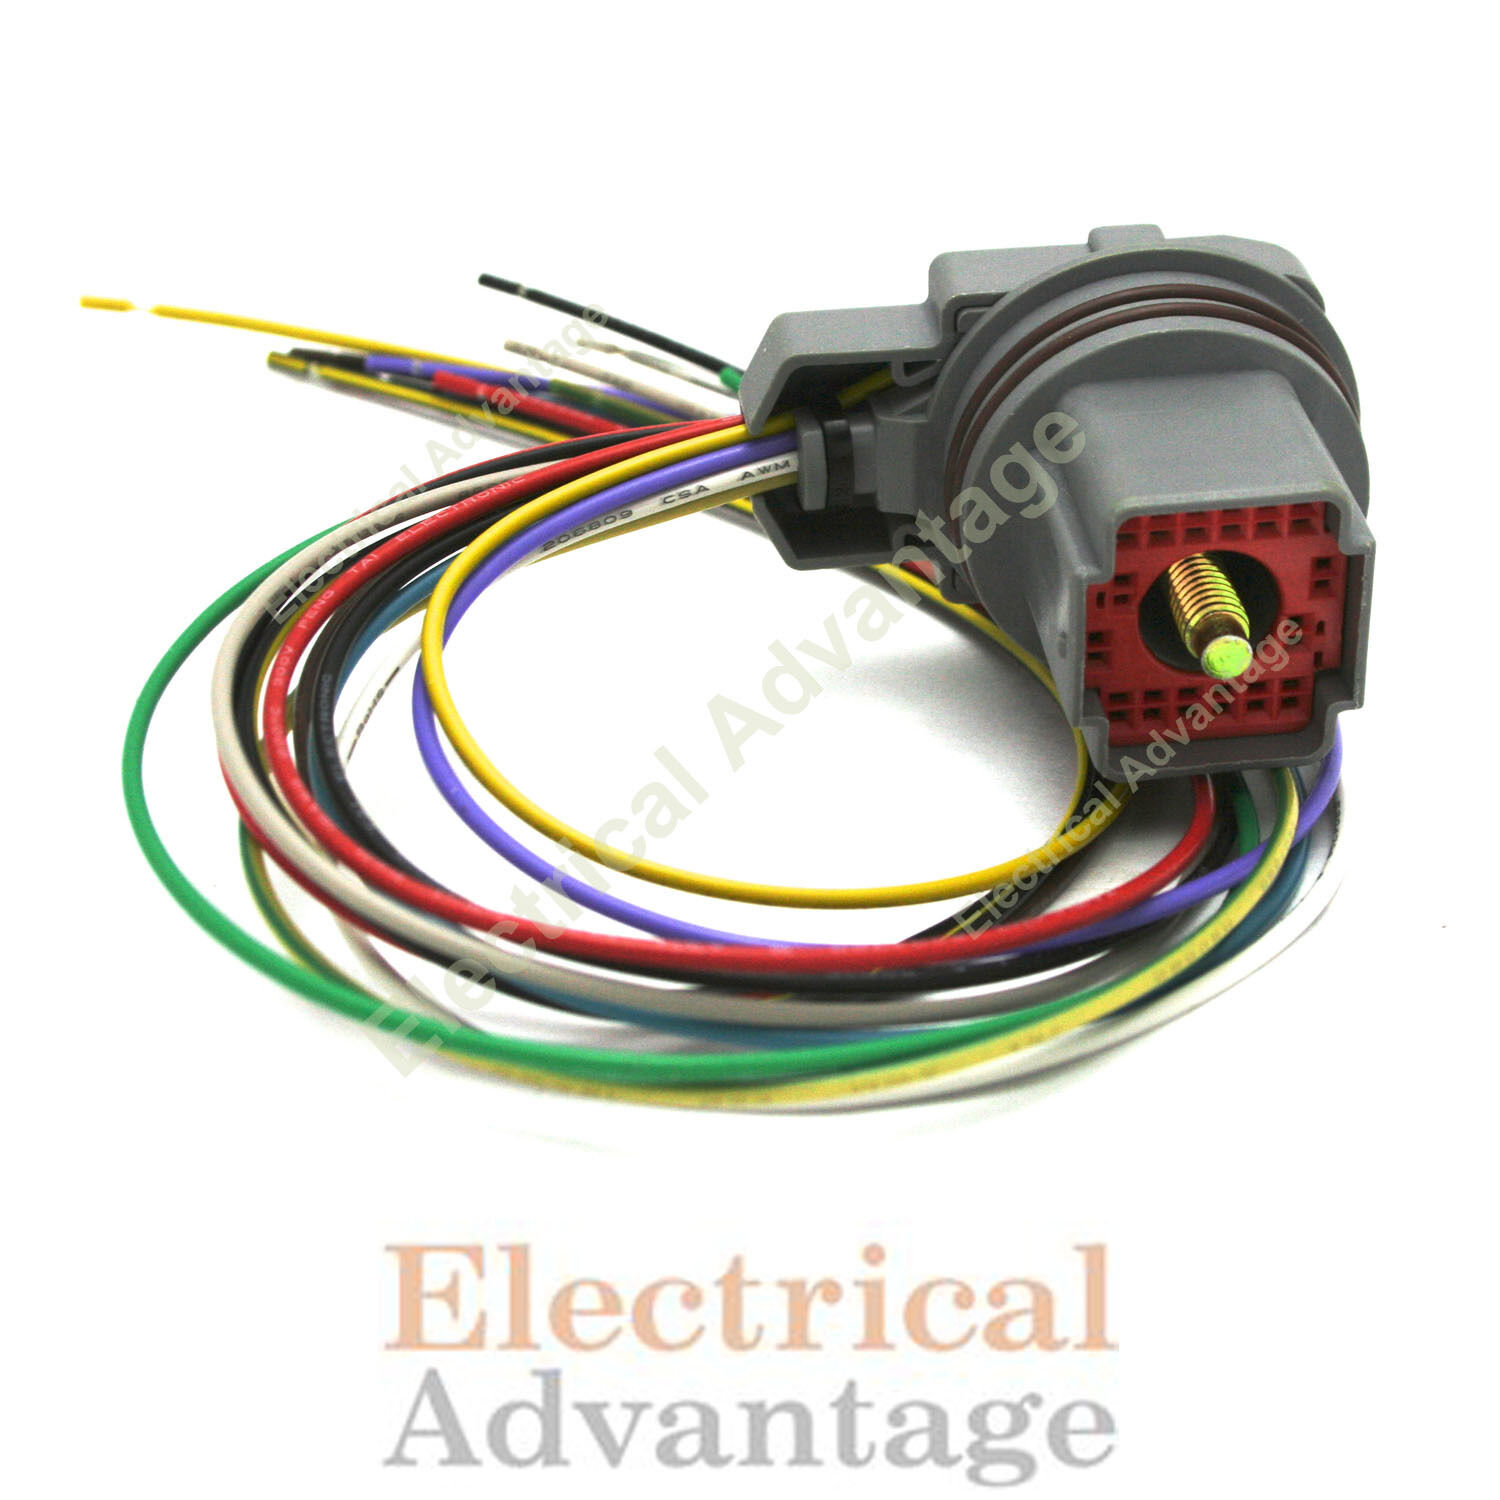 5r55s 5r55w Transmission Wire Harness Pigtail Repair Kit For E40d Wiring Testing 1 Of 5free Shipping